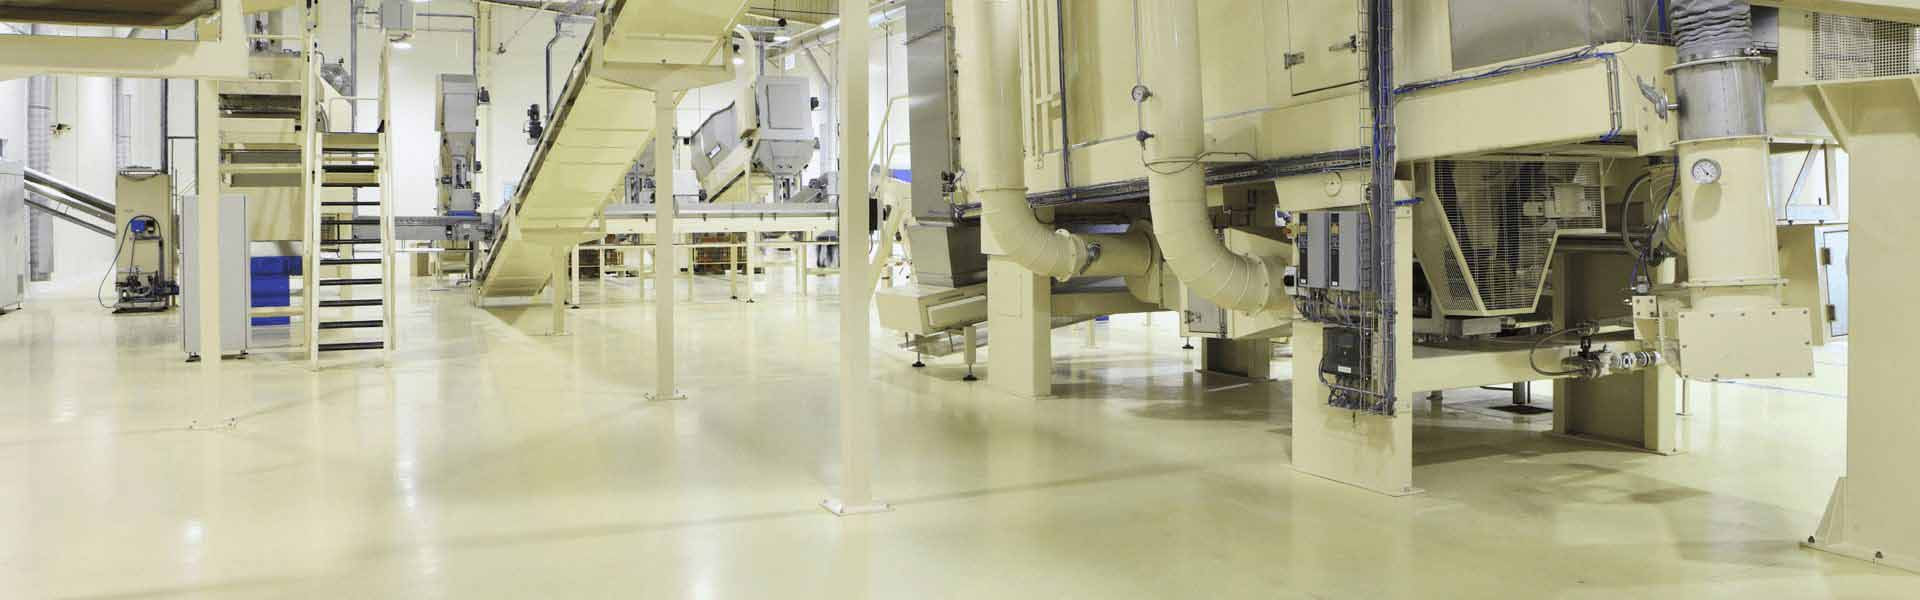 inside industrial area with epoxy flooring